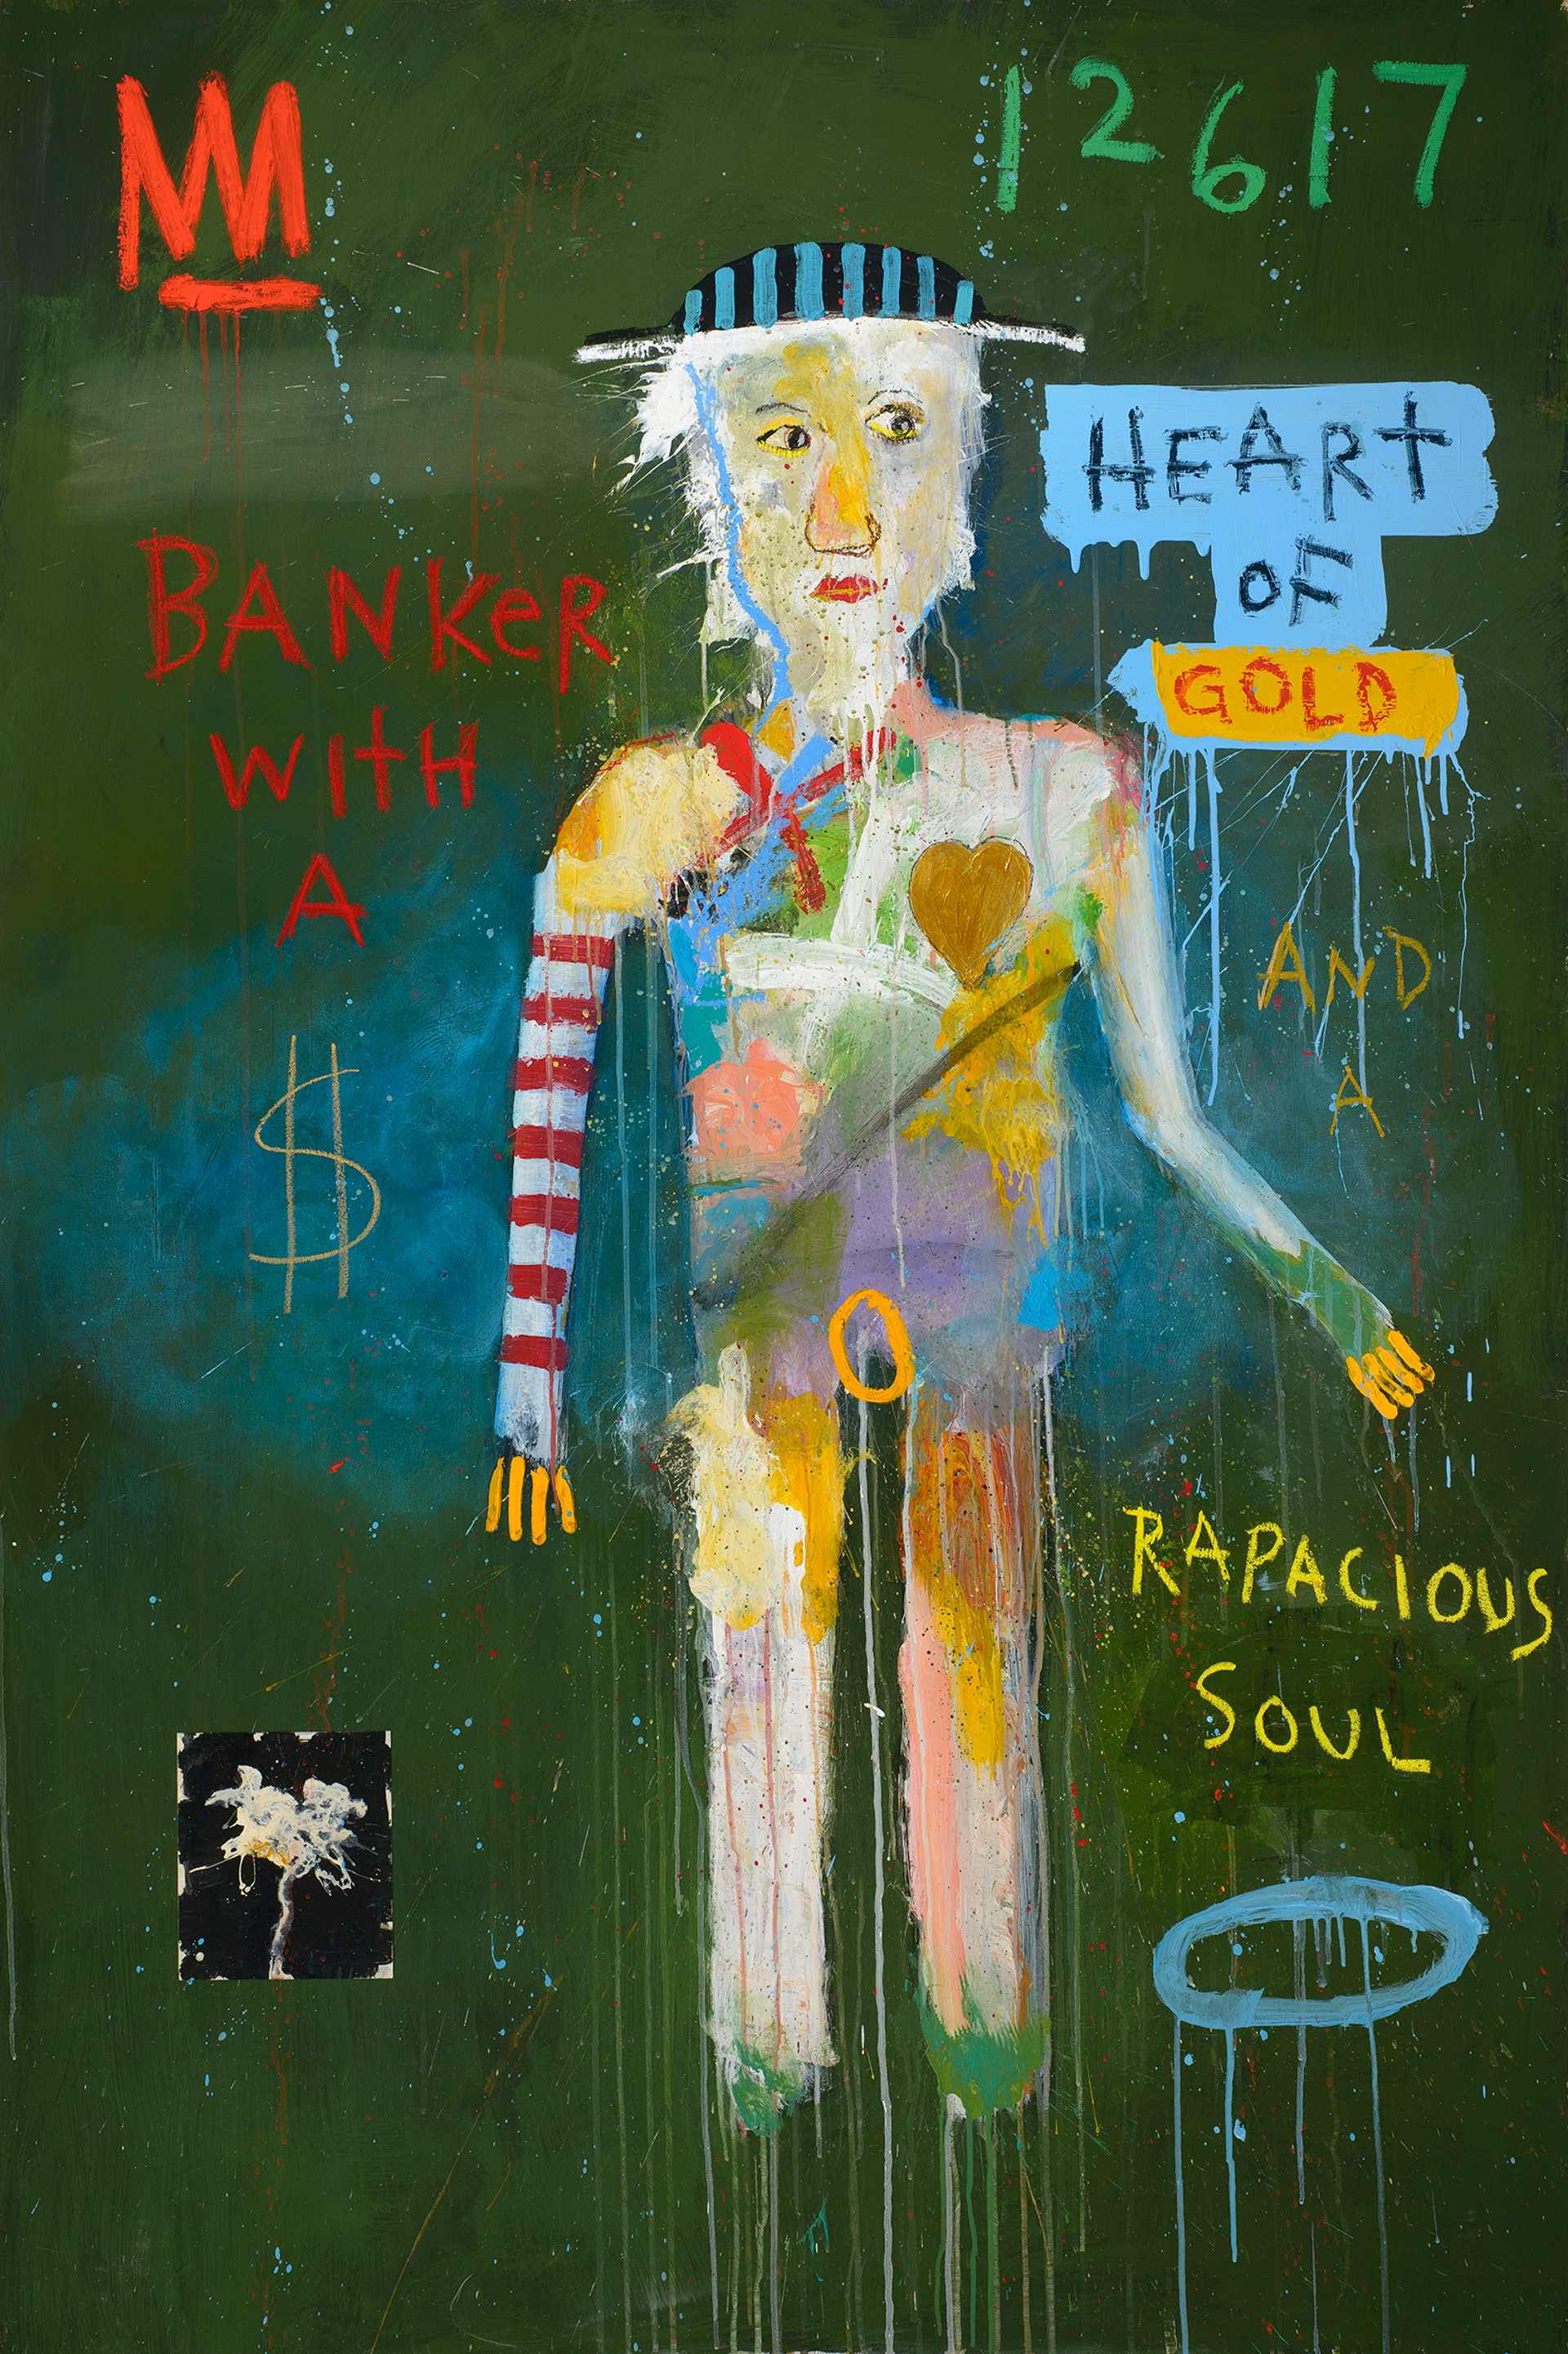 Banker With a Heart of Gold by Michael Snodgrass